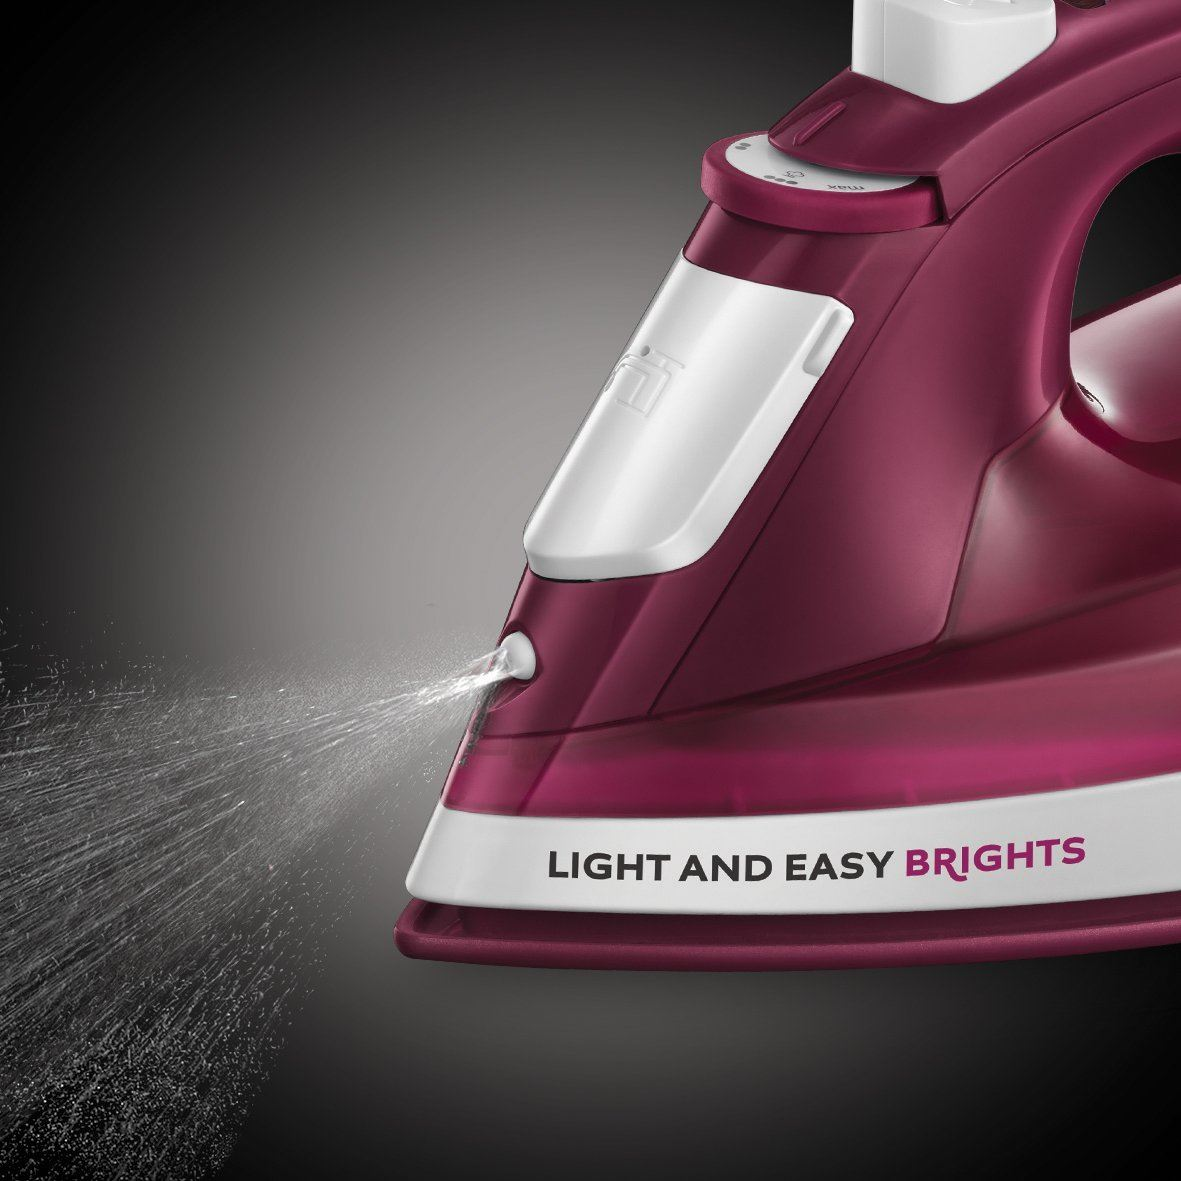 Russell-Hobbs-24840-Light-amp-Easy-Brights-Steam-Iron-with-Ceramic-Soleplate-2400W thumbnail 22